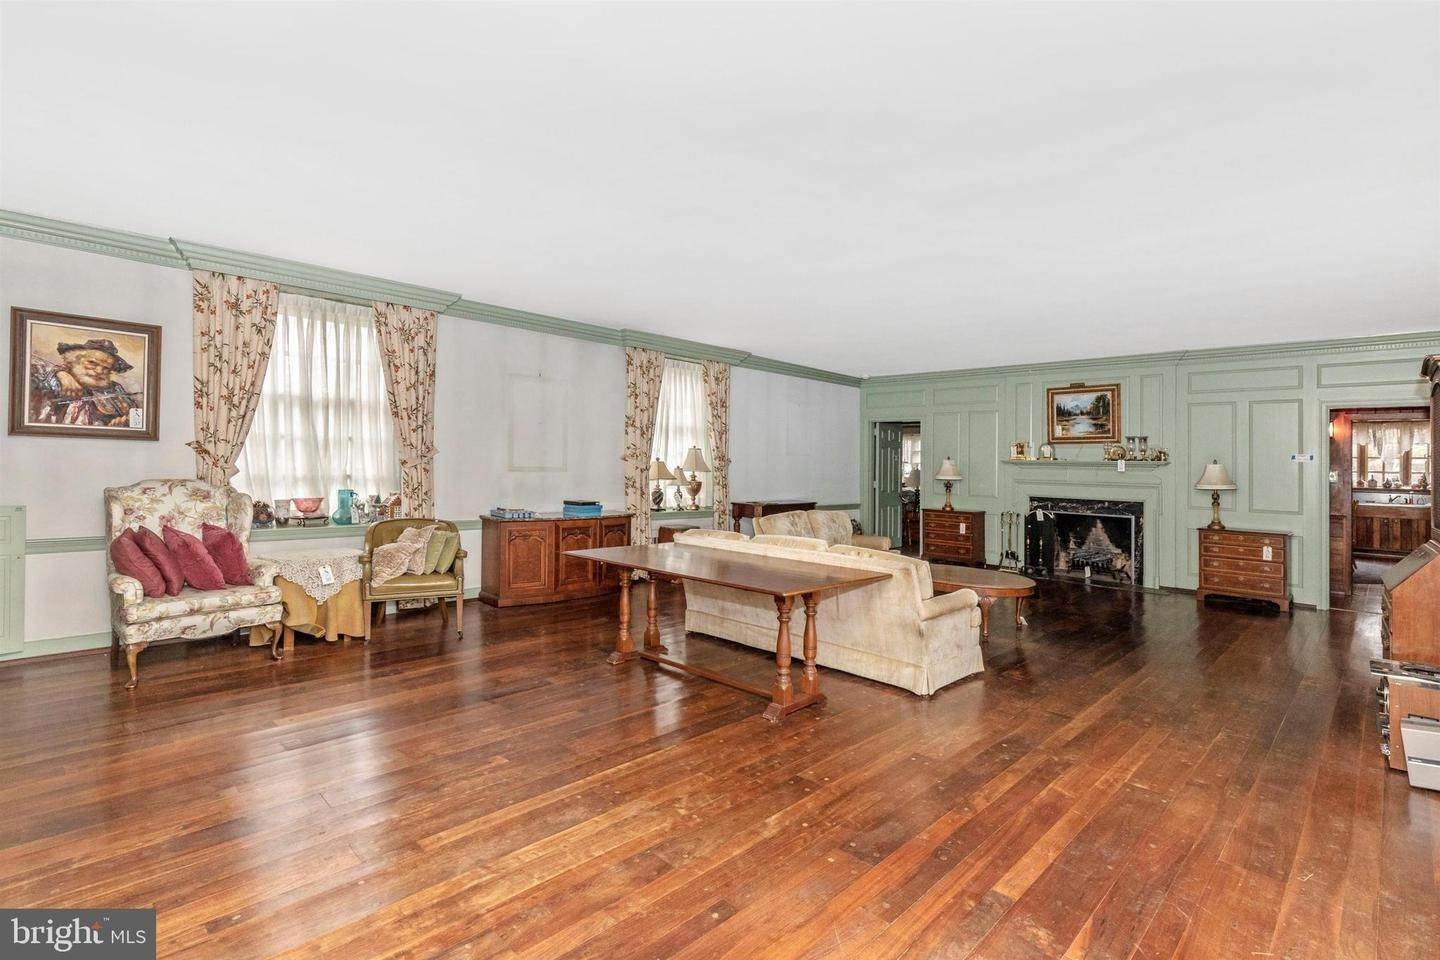 4. Detached House for Sale at 2576 BEAN ROAD Norristown, Pennsylvania 19403 United States